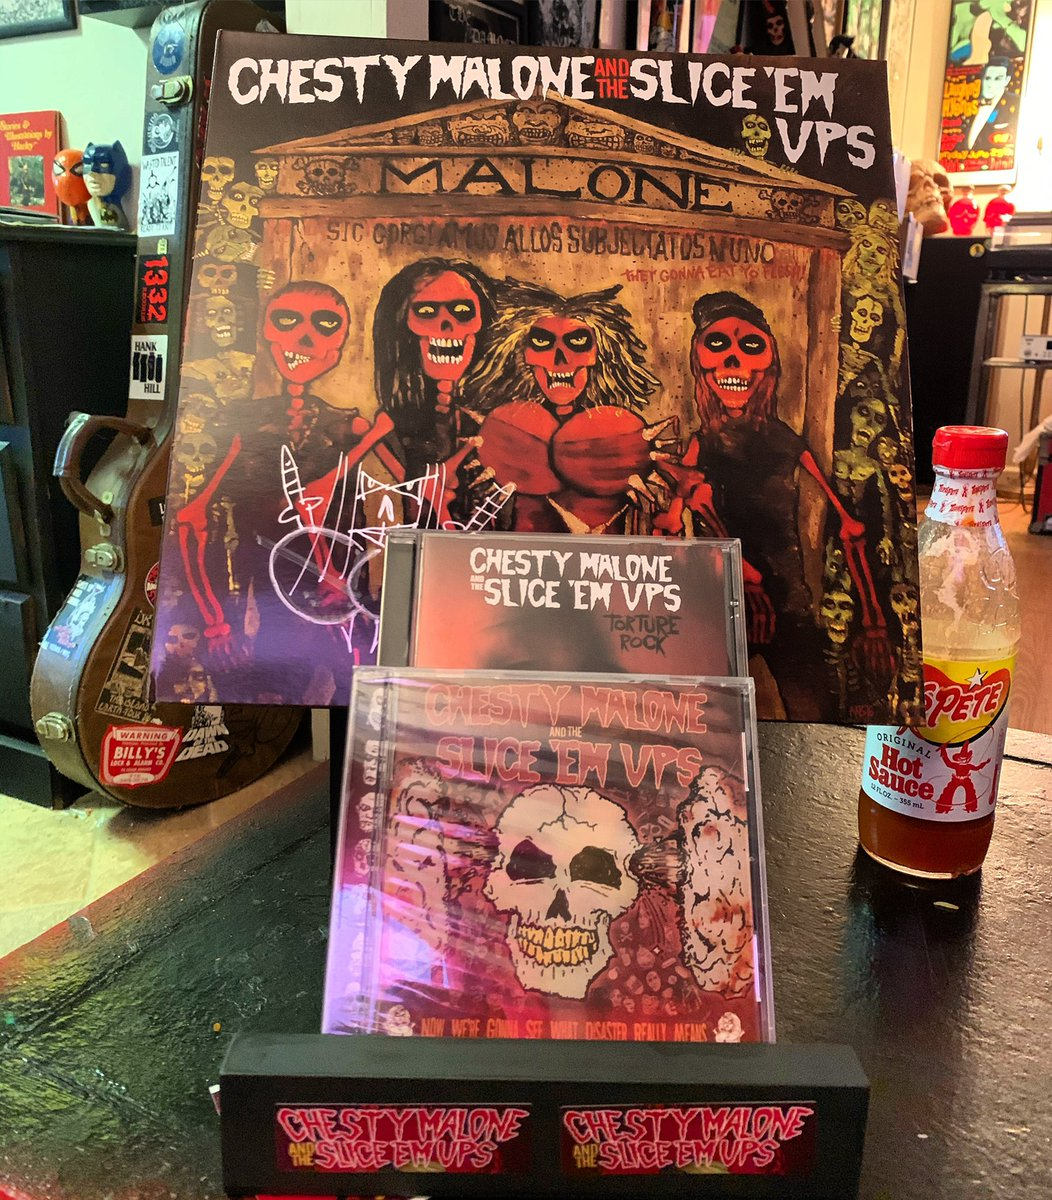 How's your #chestymalone collection looking?! Buy our records/CDs! Link in bio! #chestymaloneandthesliceemups #thrashpunk #metalpunk #satanicbrooklynscum #bandmerch #supportindependentartistspic.twitter.com/xP1nJsEqbx